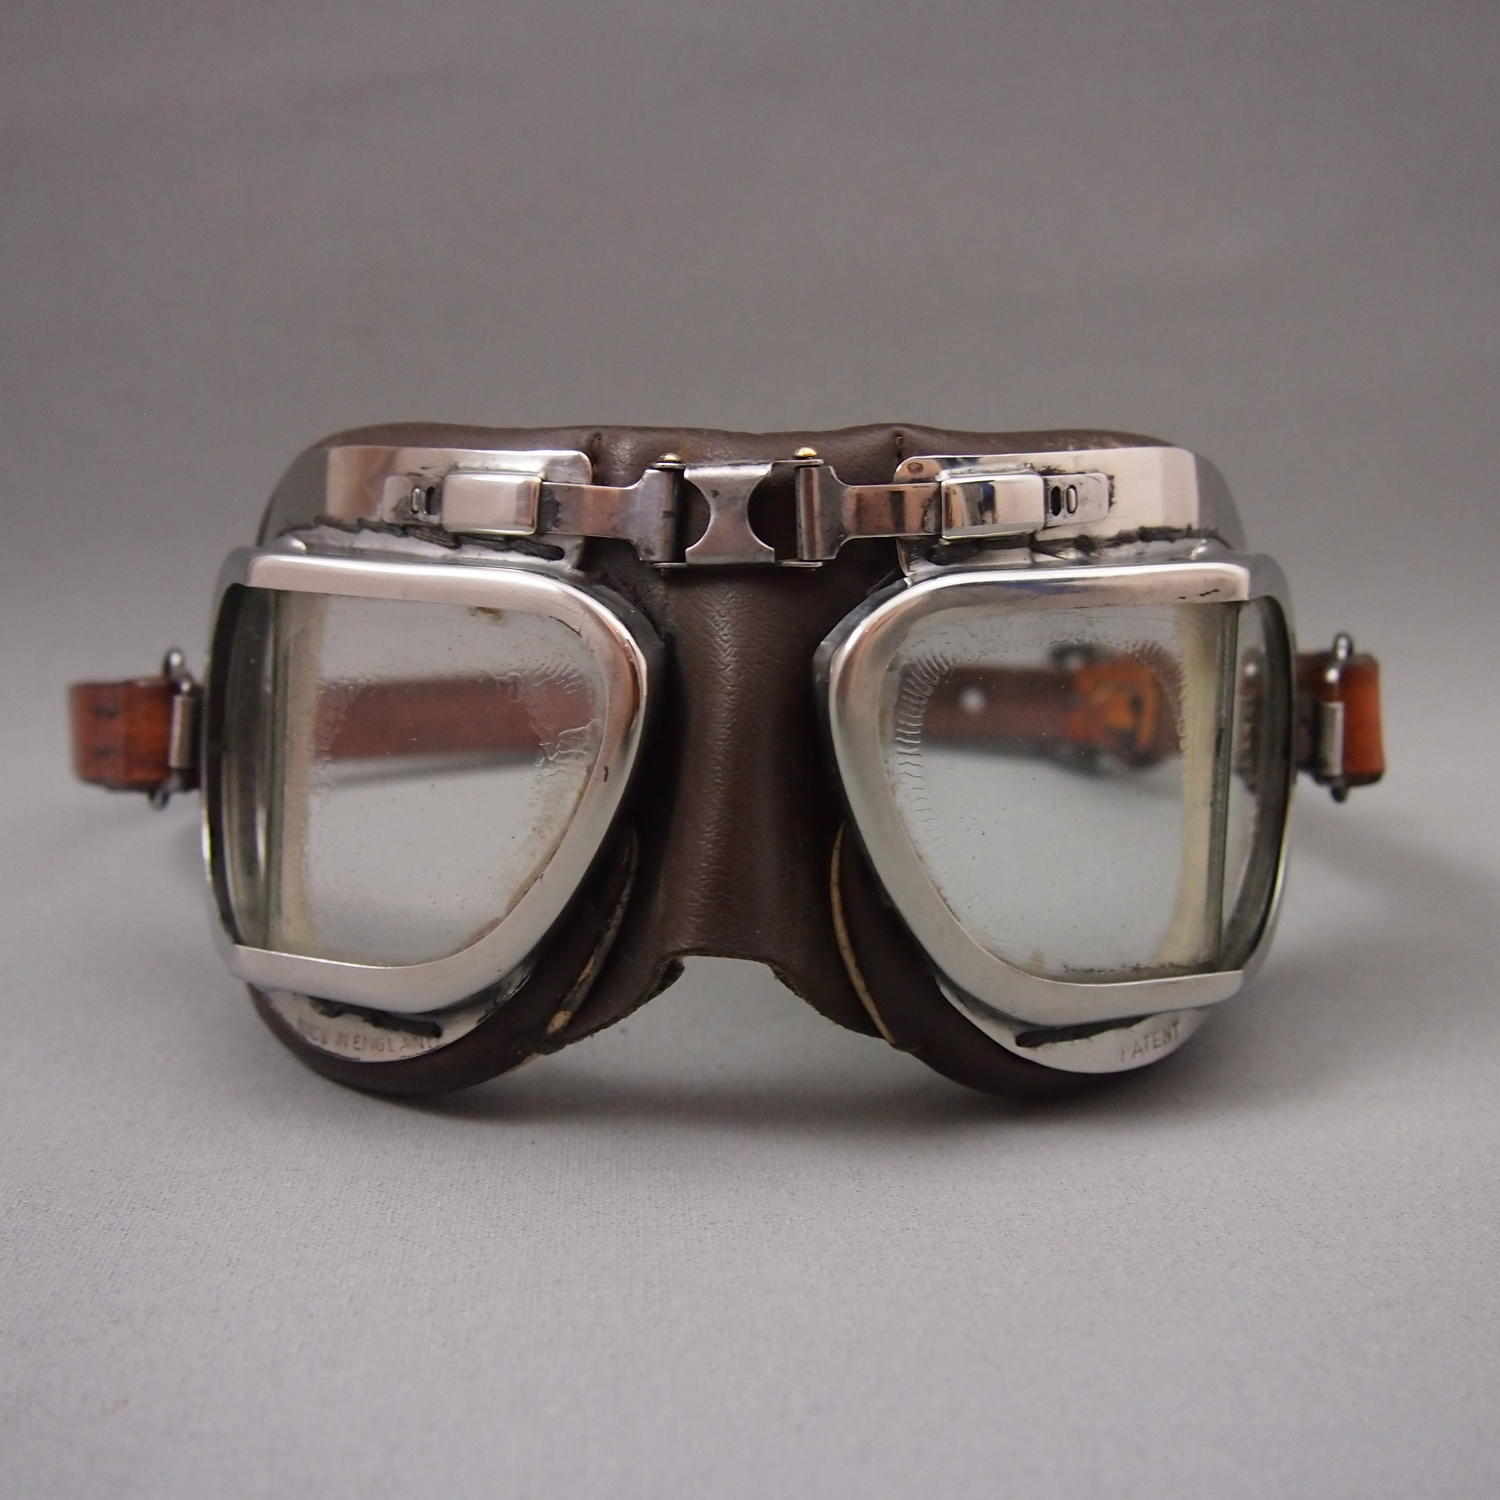 Vintage Driving Goggles C1930s